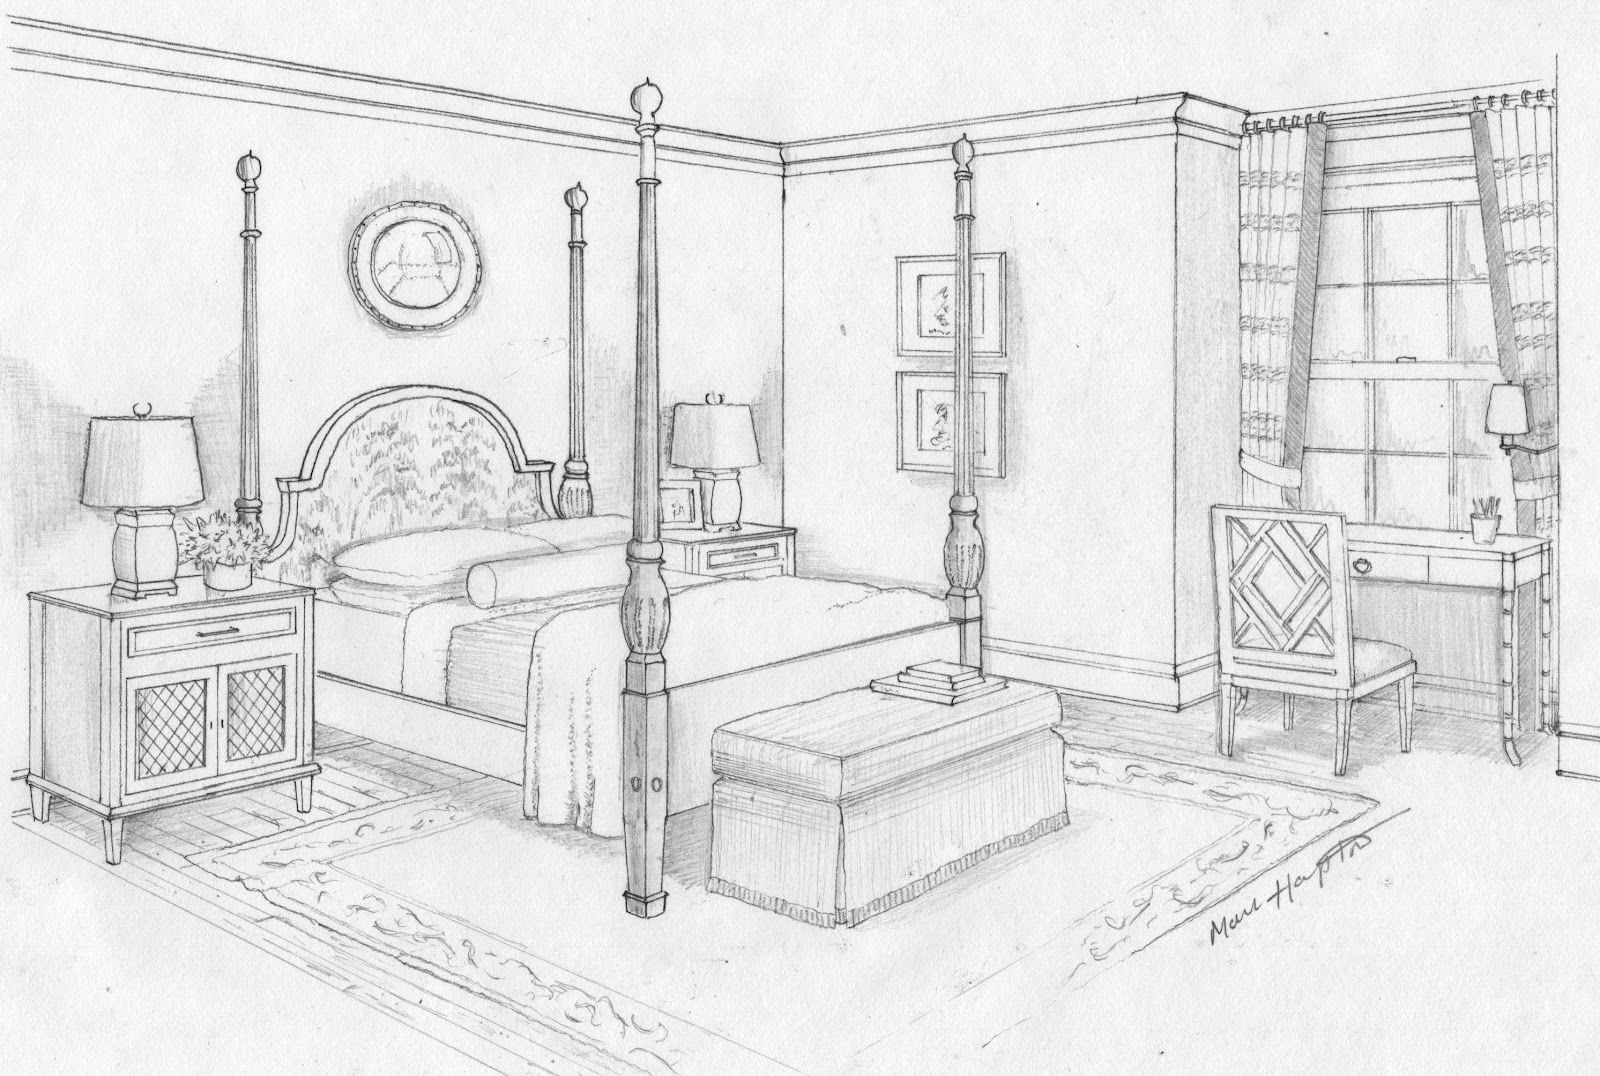 Kids Bedroom Drawing dream bedroom sketch | bedroom ideas pictures | art | pinterest